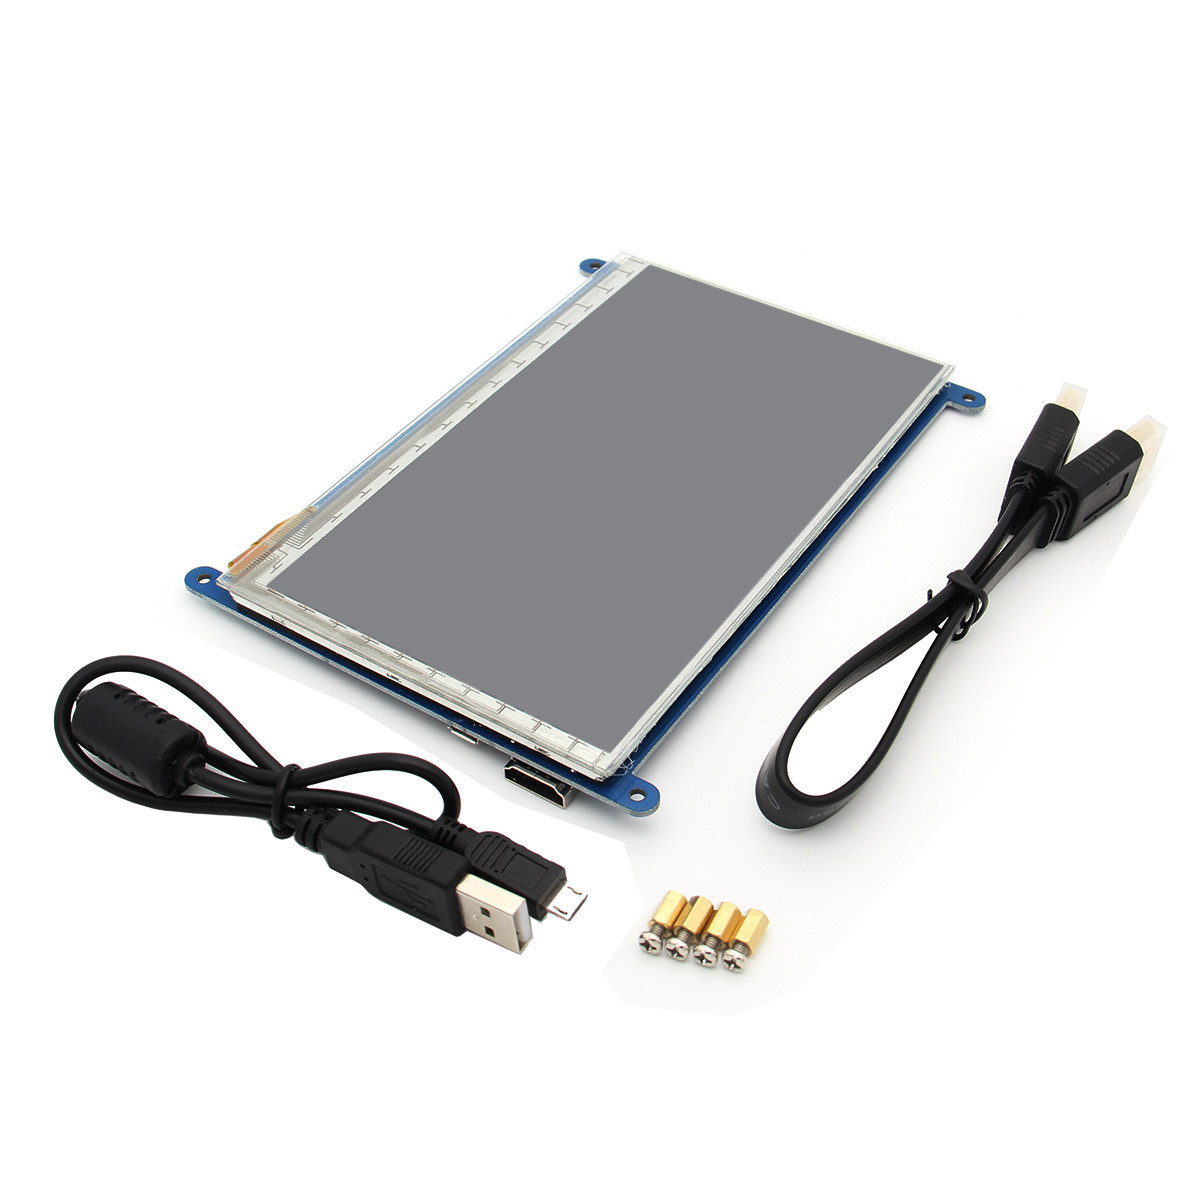 New Arrival 7 Inch 800 x 480 HDMI Capacitive IPS LCD Display 5 Point Touch Screen For Raspberry Pi 3 Model B / 2B / B+ 4 inch hdmi lcd ips screen 800 480 pixel for raspberry pi model b b raspberry pi 2 model b